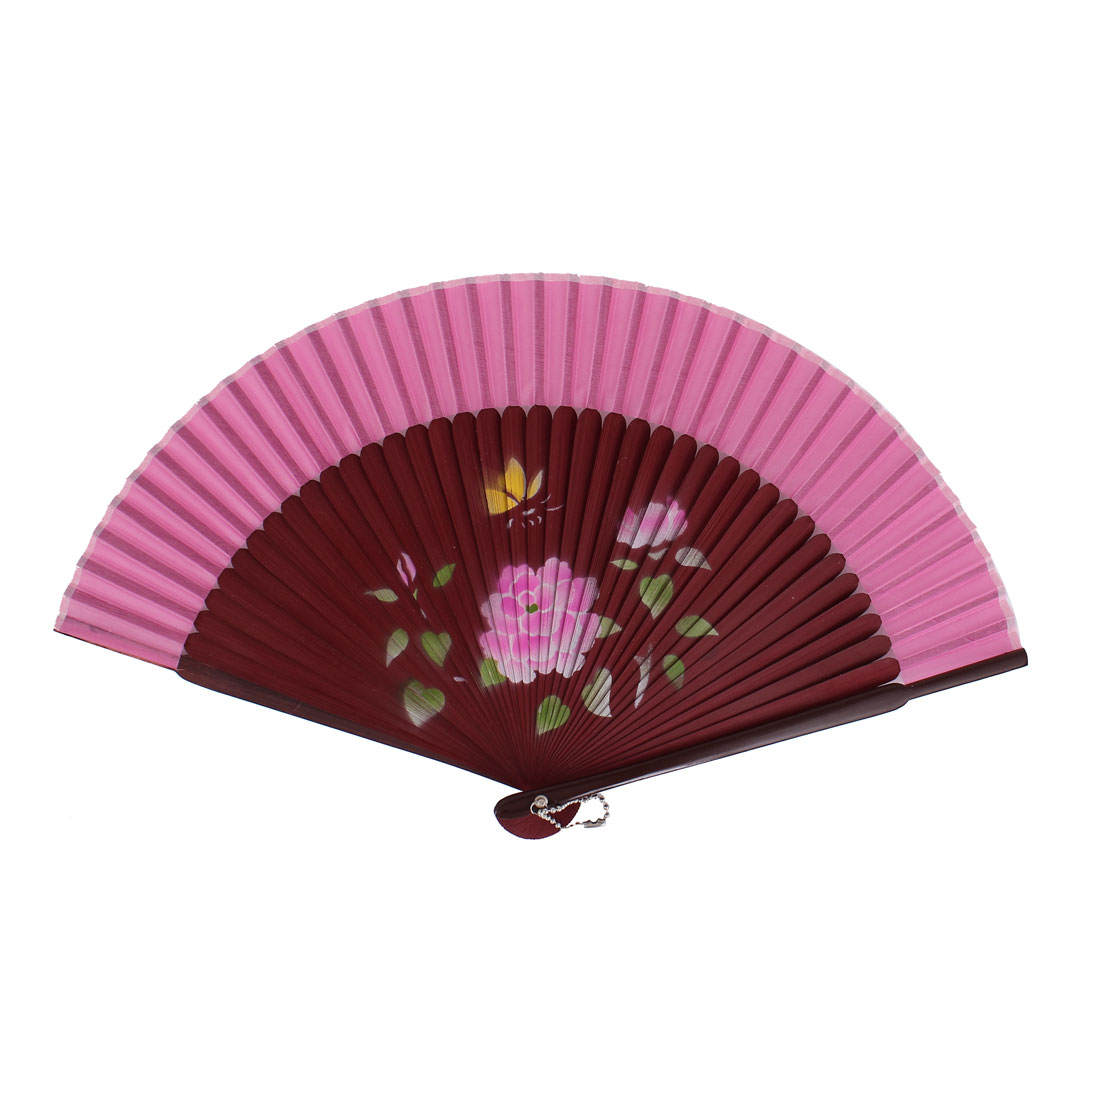 Chinese Style Flower Print Wood Handheld Collapsible Hand Fan Pink Burgundy